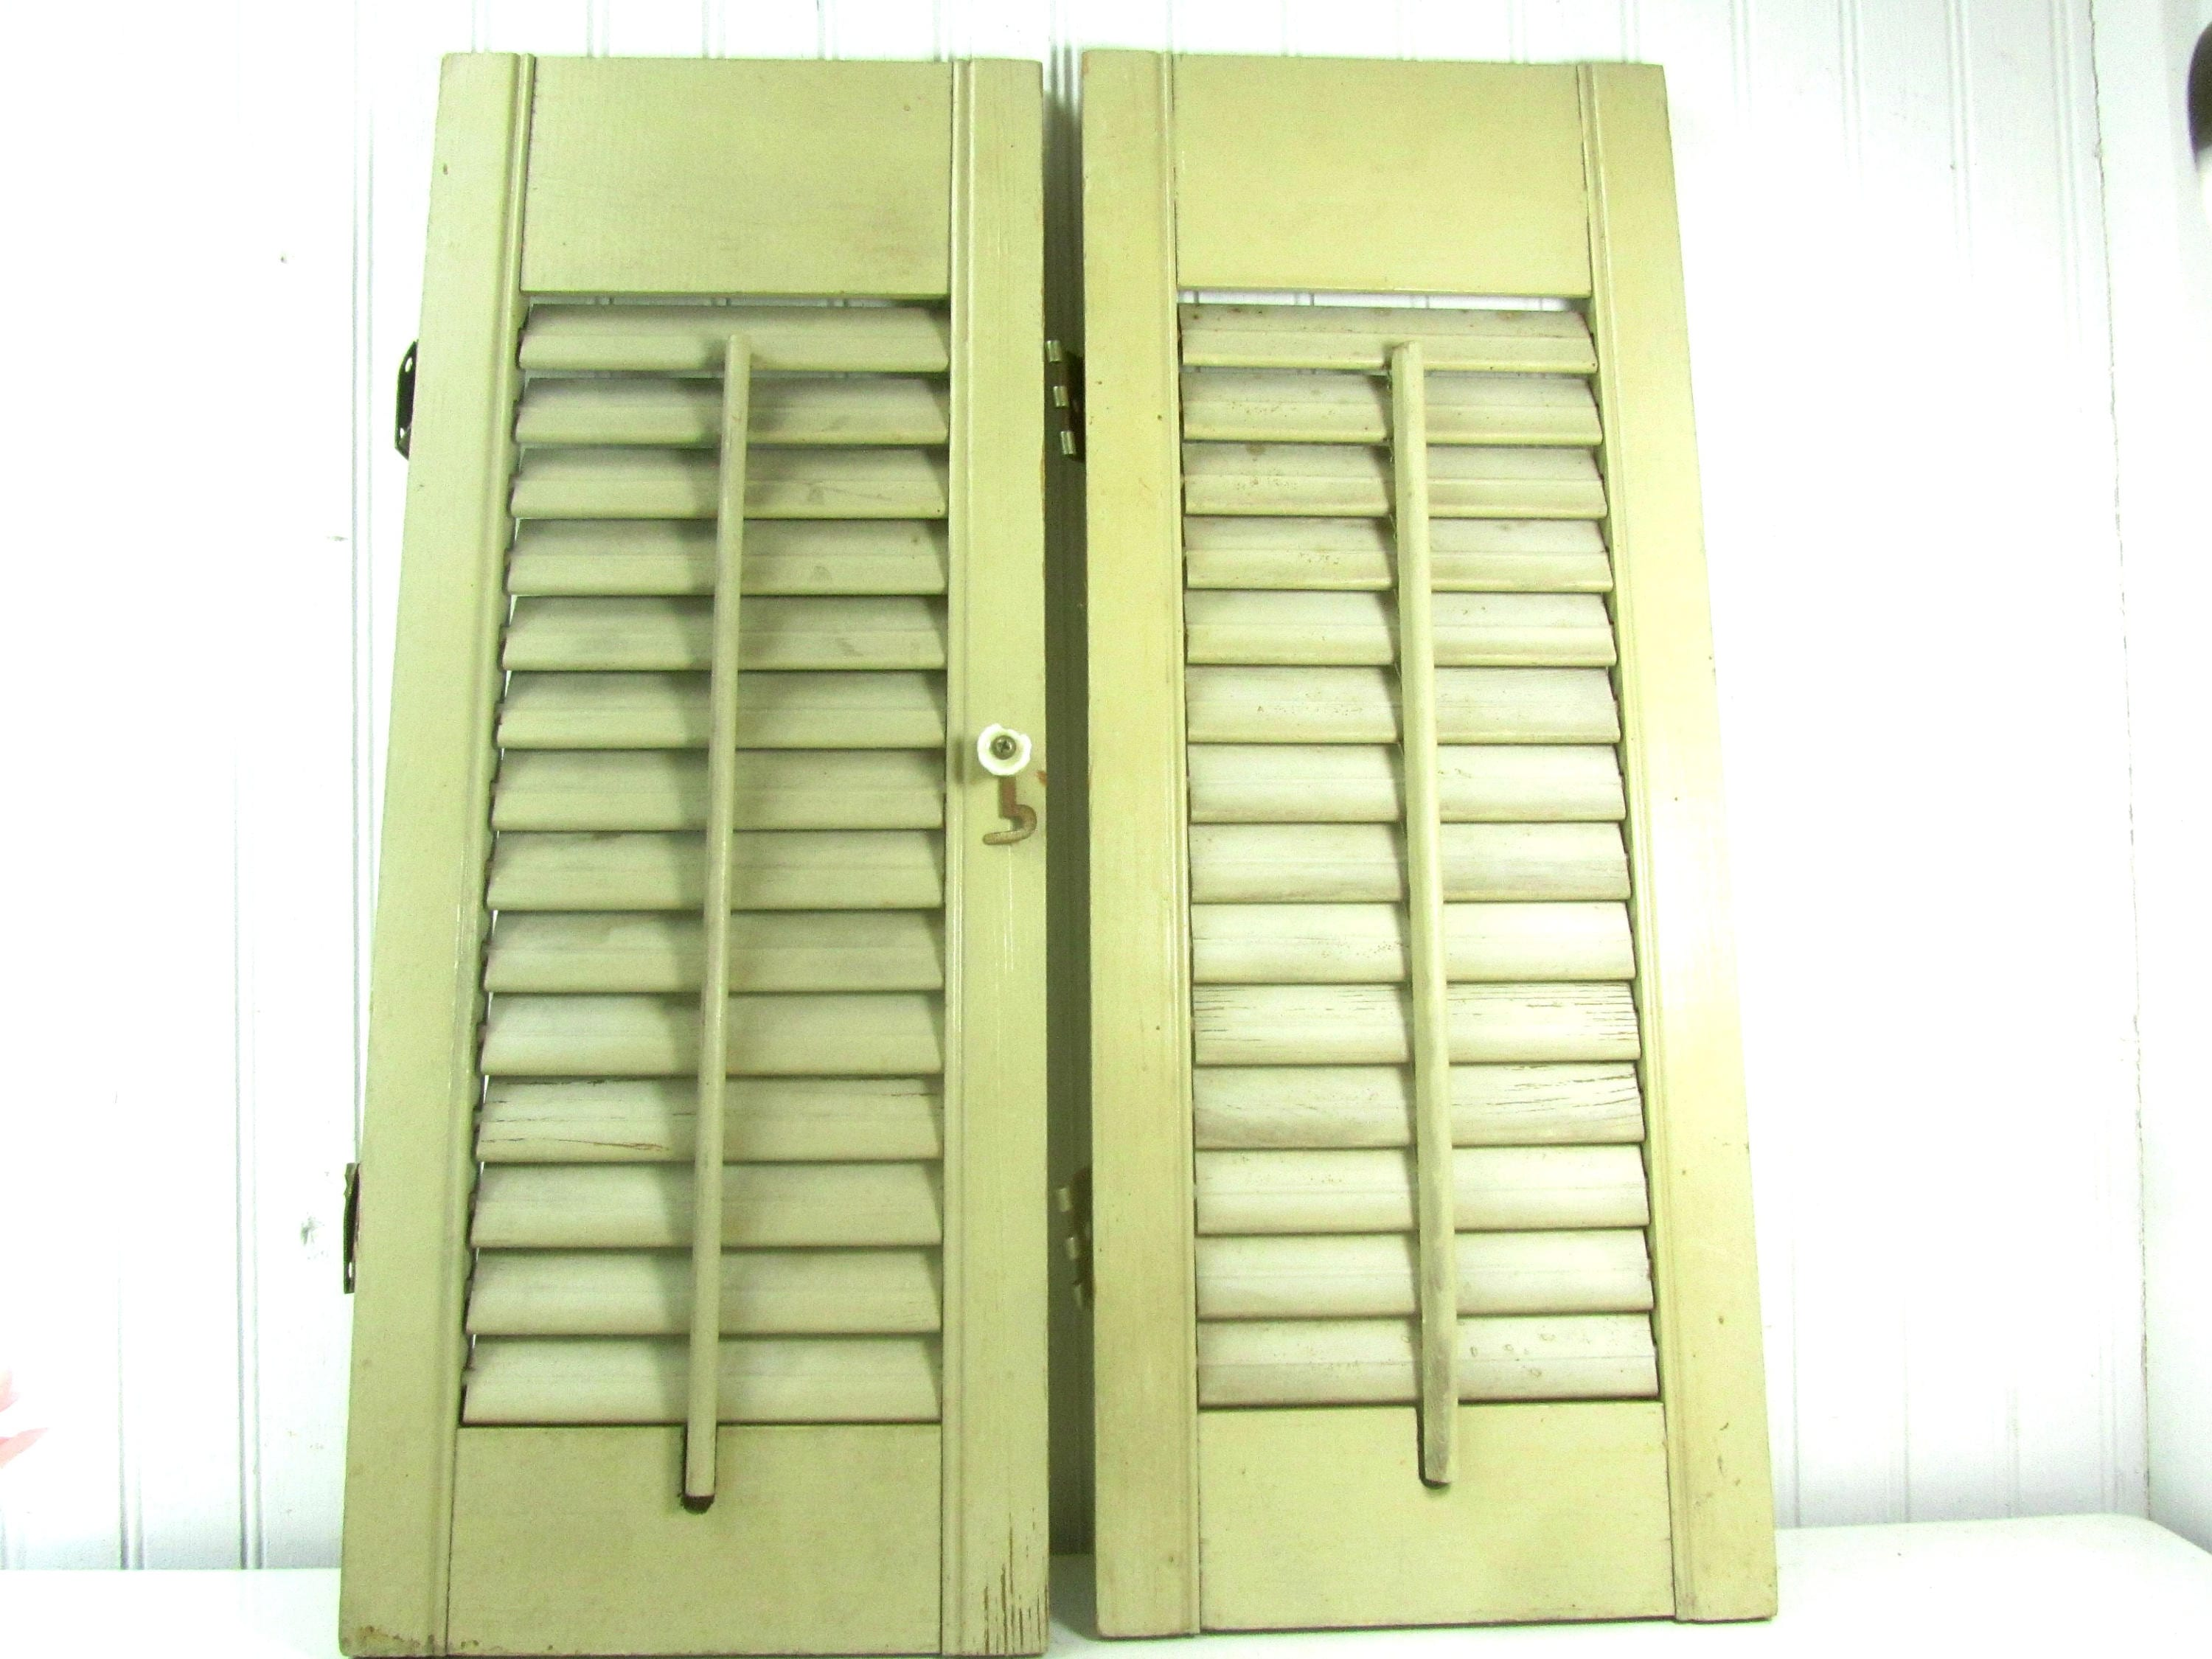 Vintage shutter window Shabby chic decor two shutters